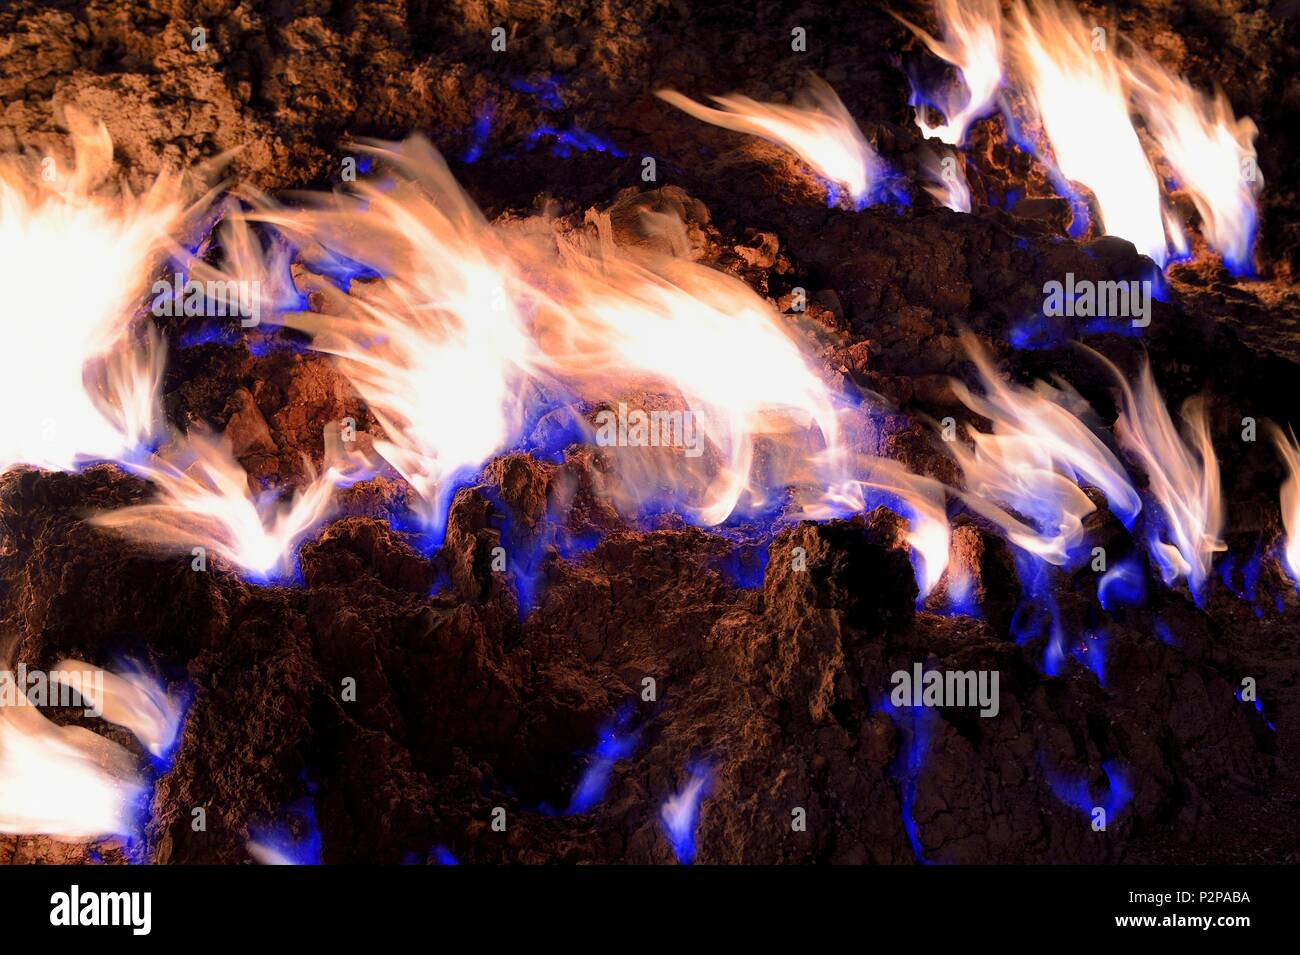 Azerbaijan, Baku, Absheron Peninsula, Yanar Dag meaning burning mountain is a natural gas fire which blazes continuously on a hillside Stock Photo